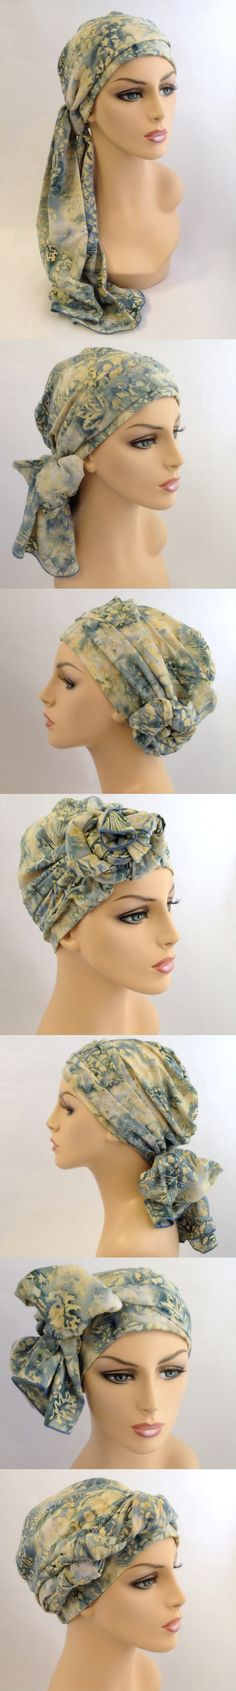 Turban & Scarf set easily ties in dozens of styles. Viisit and see our turban tutorials, how to tie a turban. Feel beautiful during #chemo